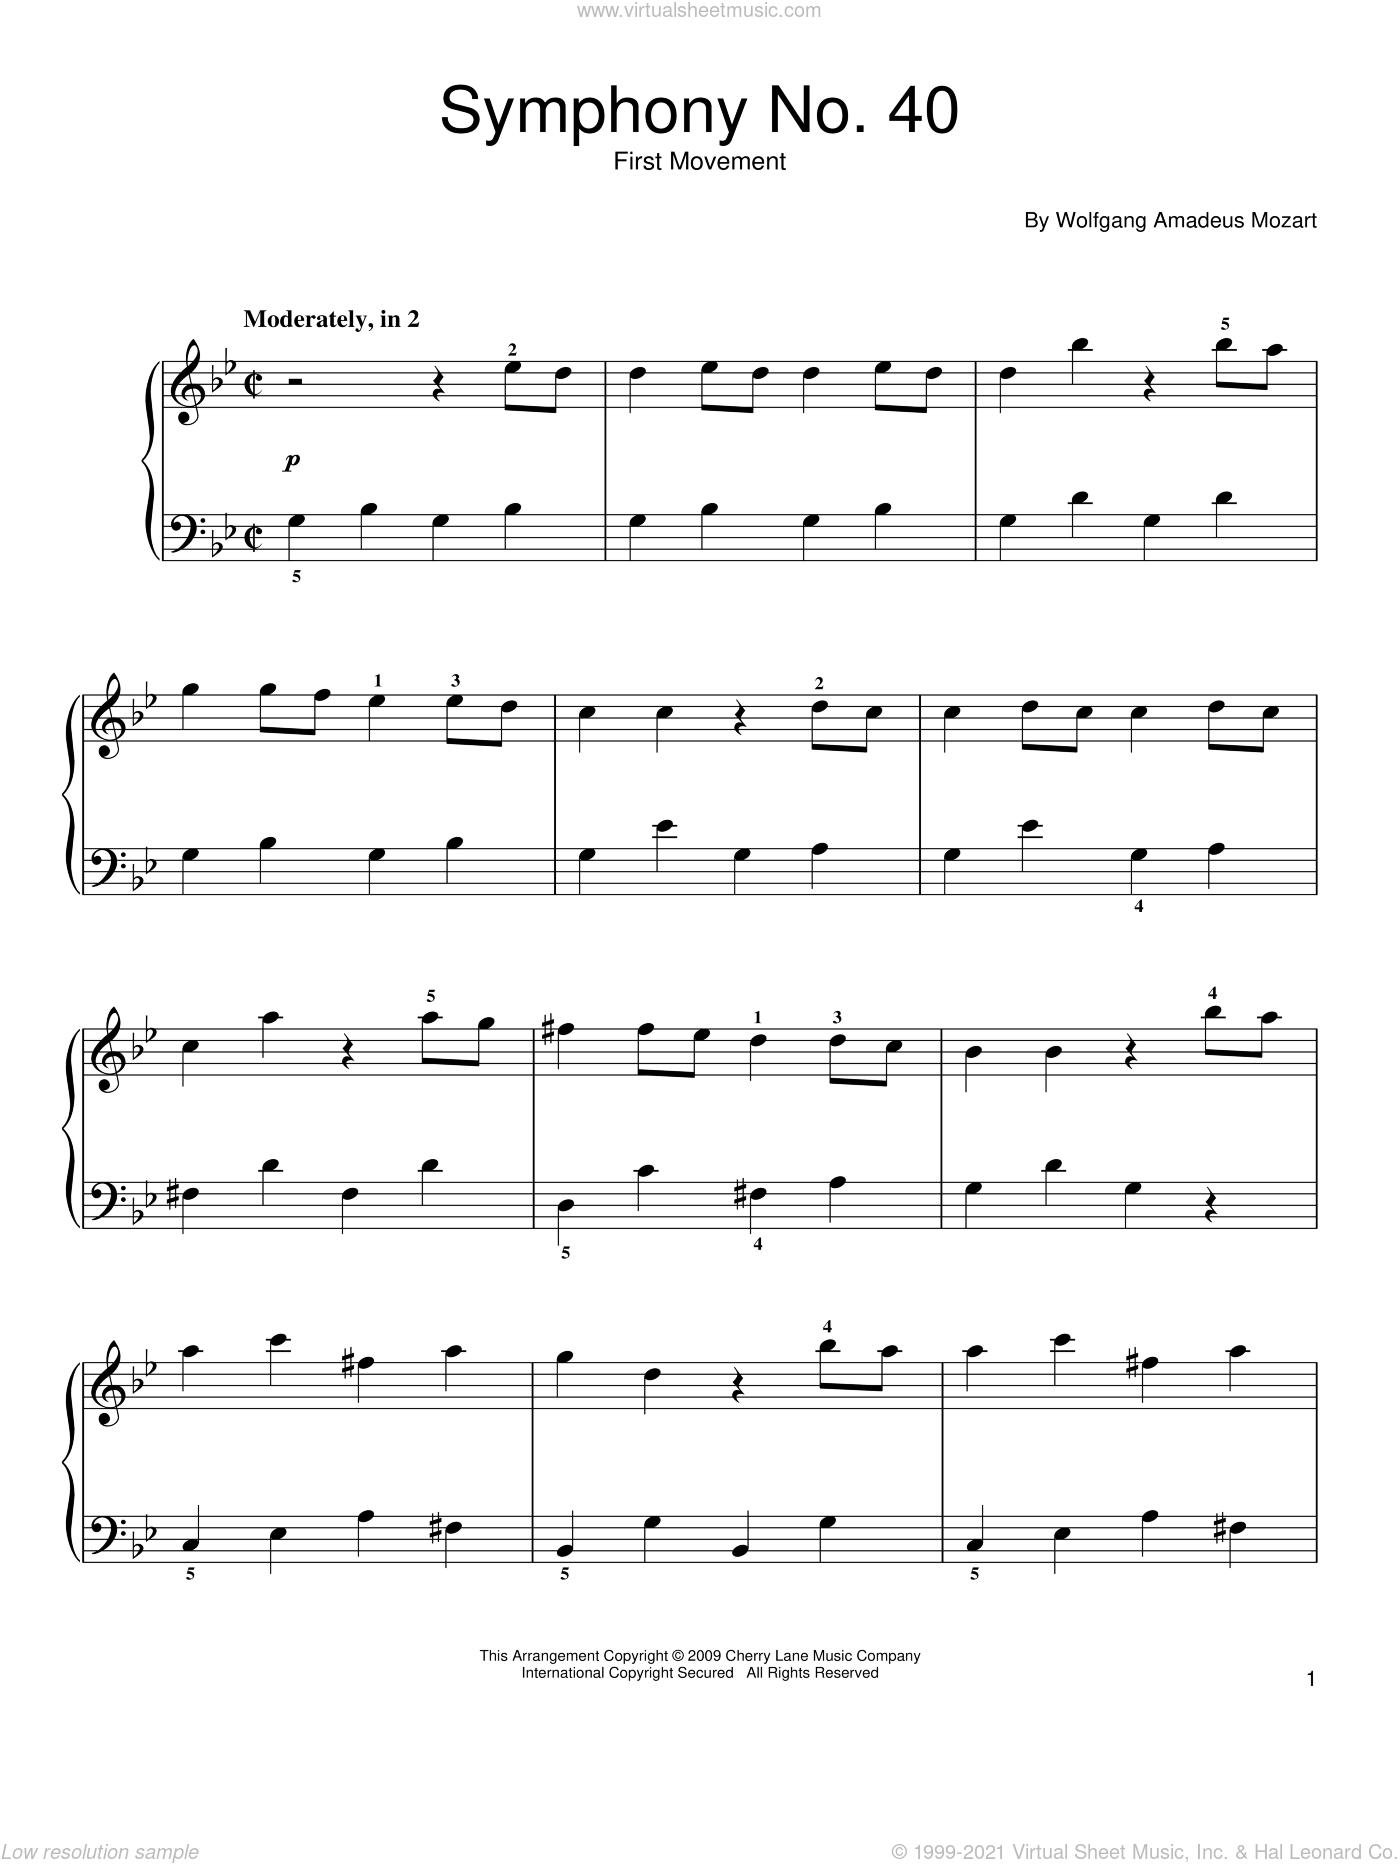 Symphony No. 40 in G Minor, First Movement Excerpt sheet music for piano solo (chords) by Wolfgang Amadeus Mozart